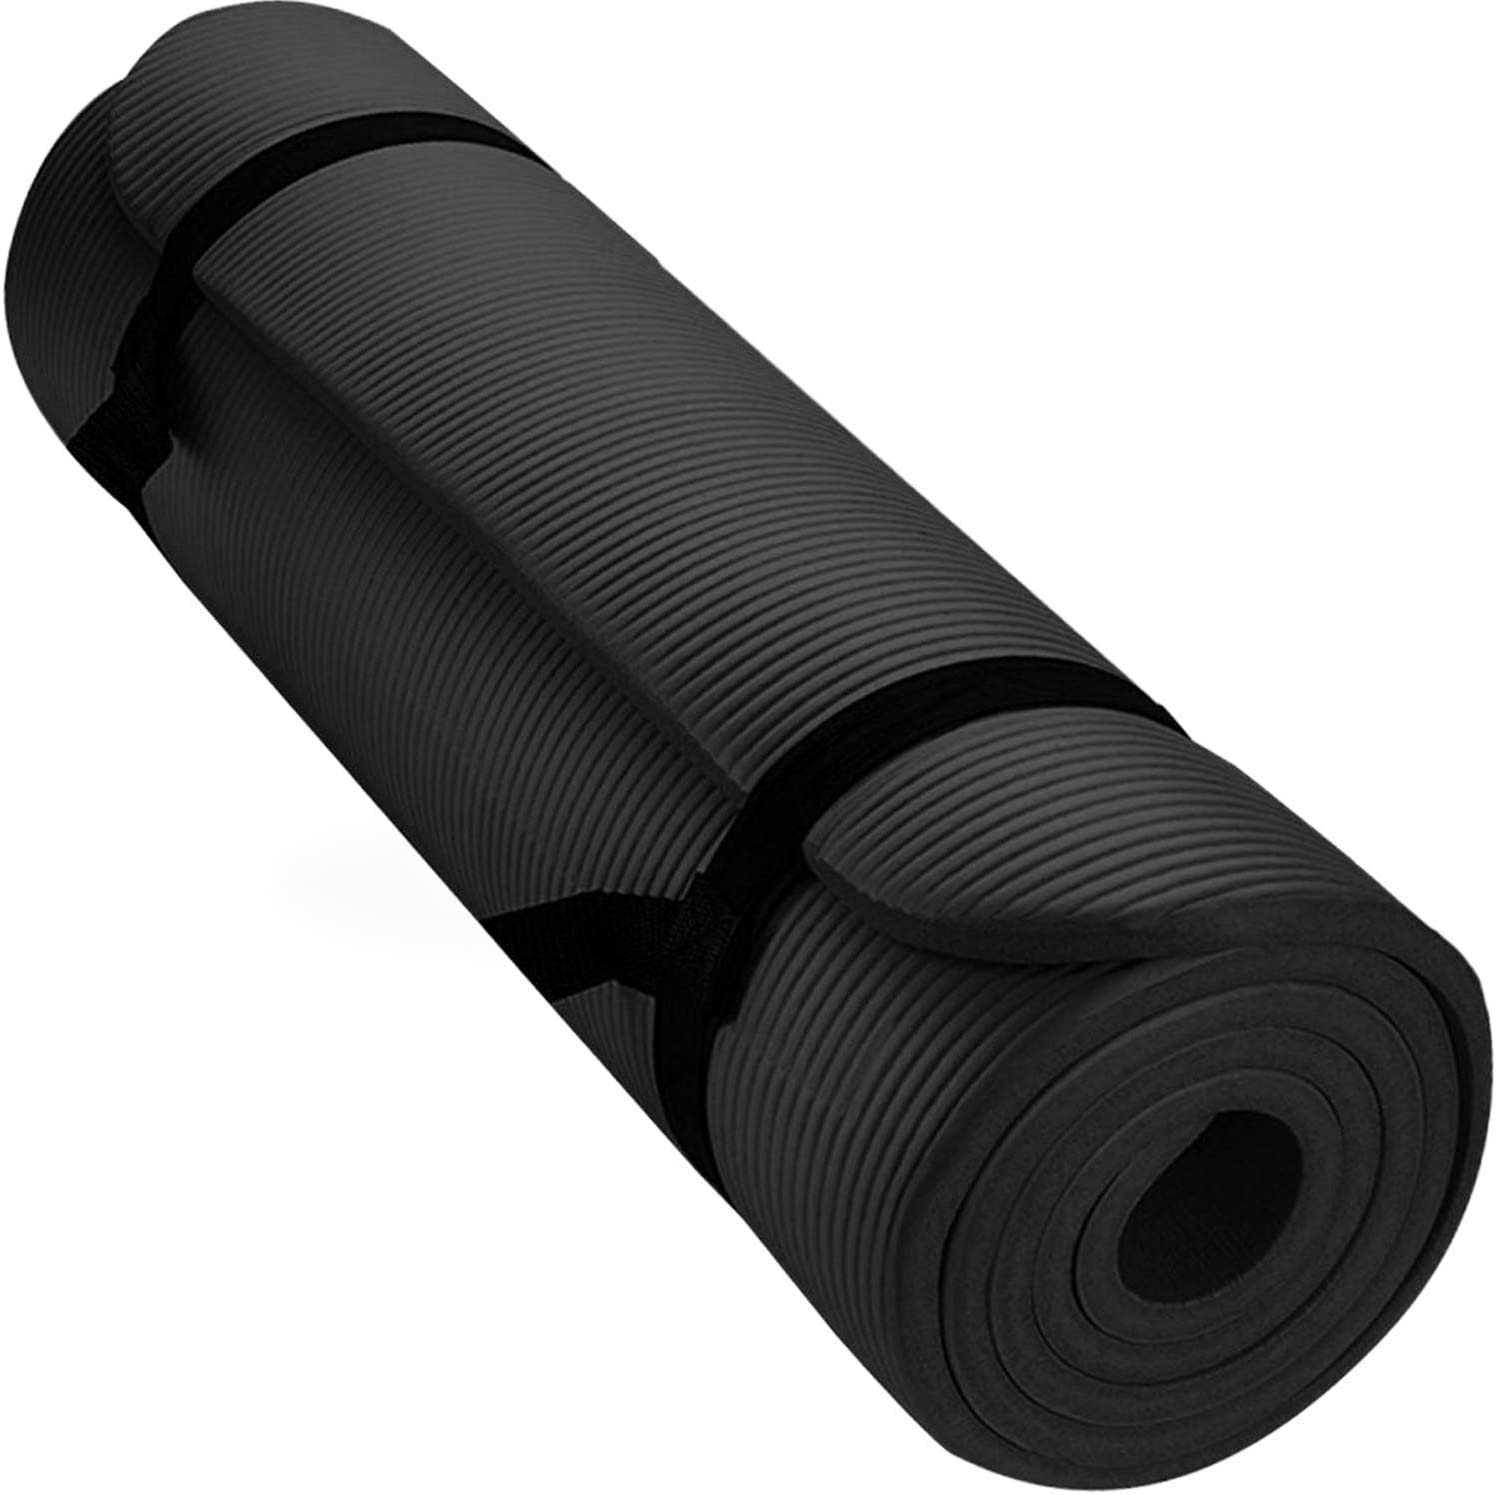 Aduro Sport Yoga Workout Mat, Extra Thick Yoga Foam Mat for Home Gym Exercise Mat with Carrying Strap